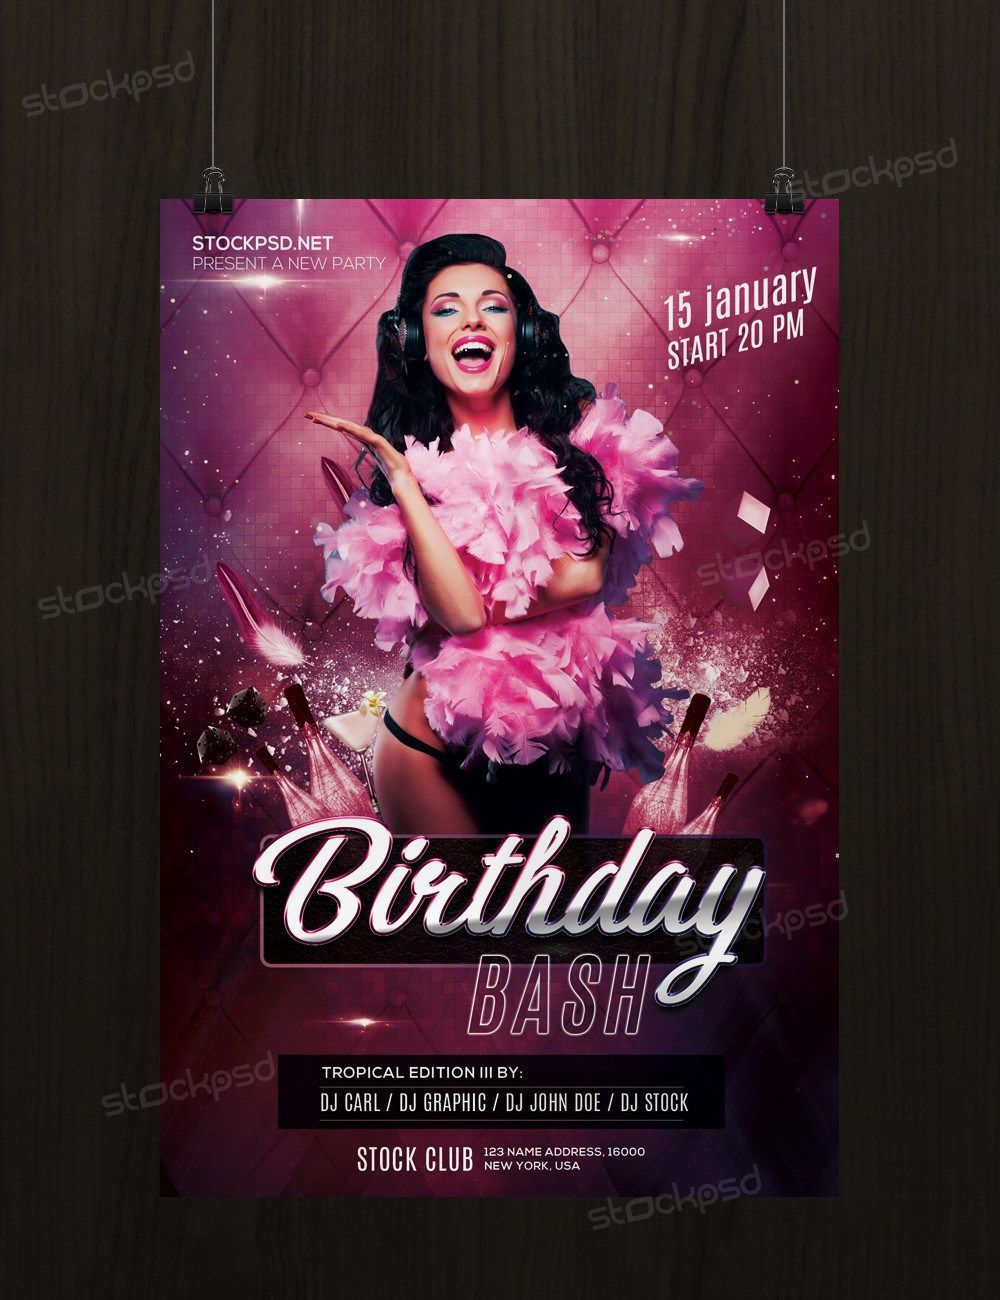 004 Wonderful Free Birthday Flyer Template Psd High Definition  Foam Party - Neon Glow Download PoolFull